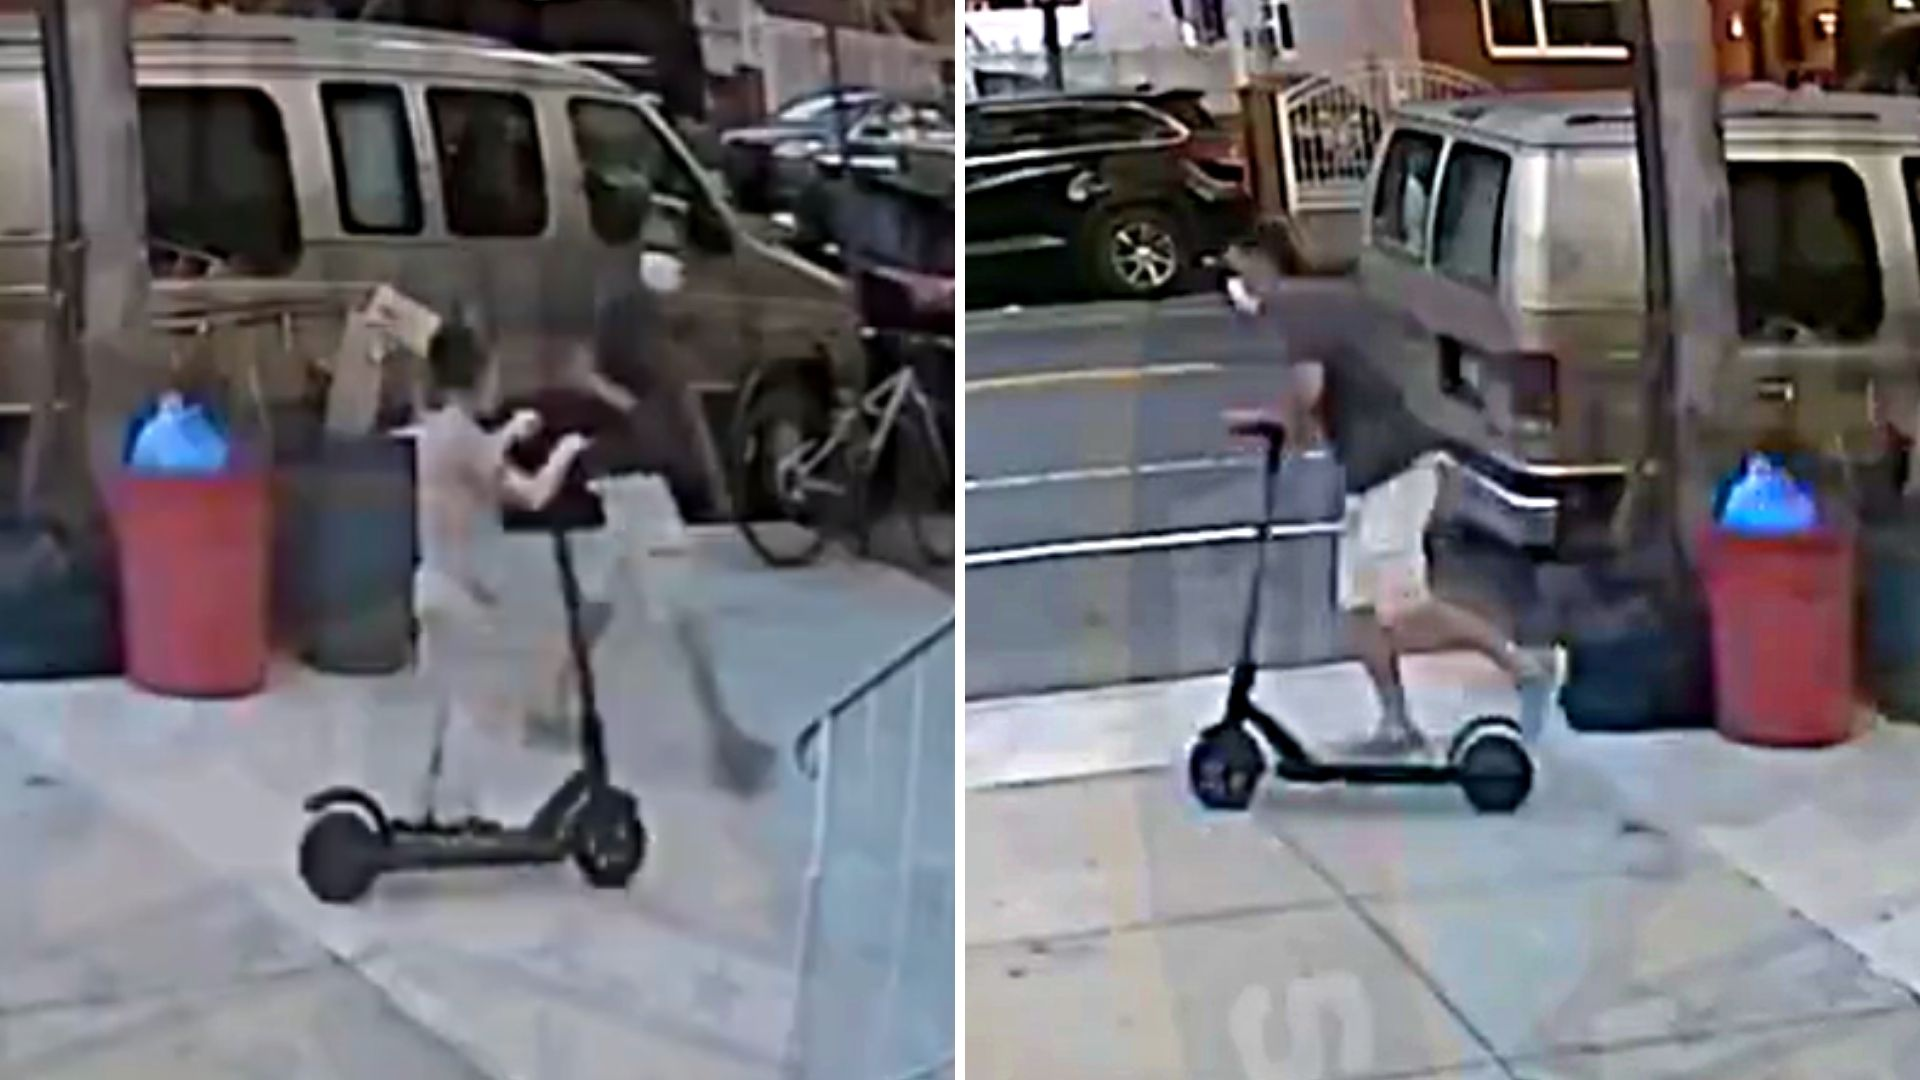 Man steals boy's e-scooter in Brooklyn: NYPD